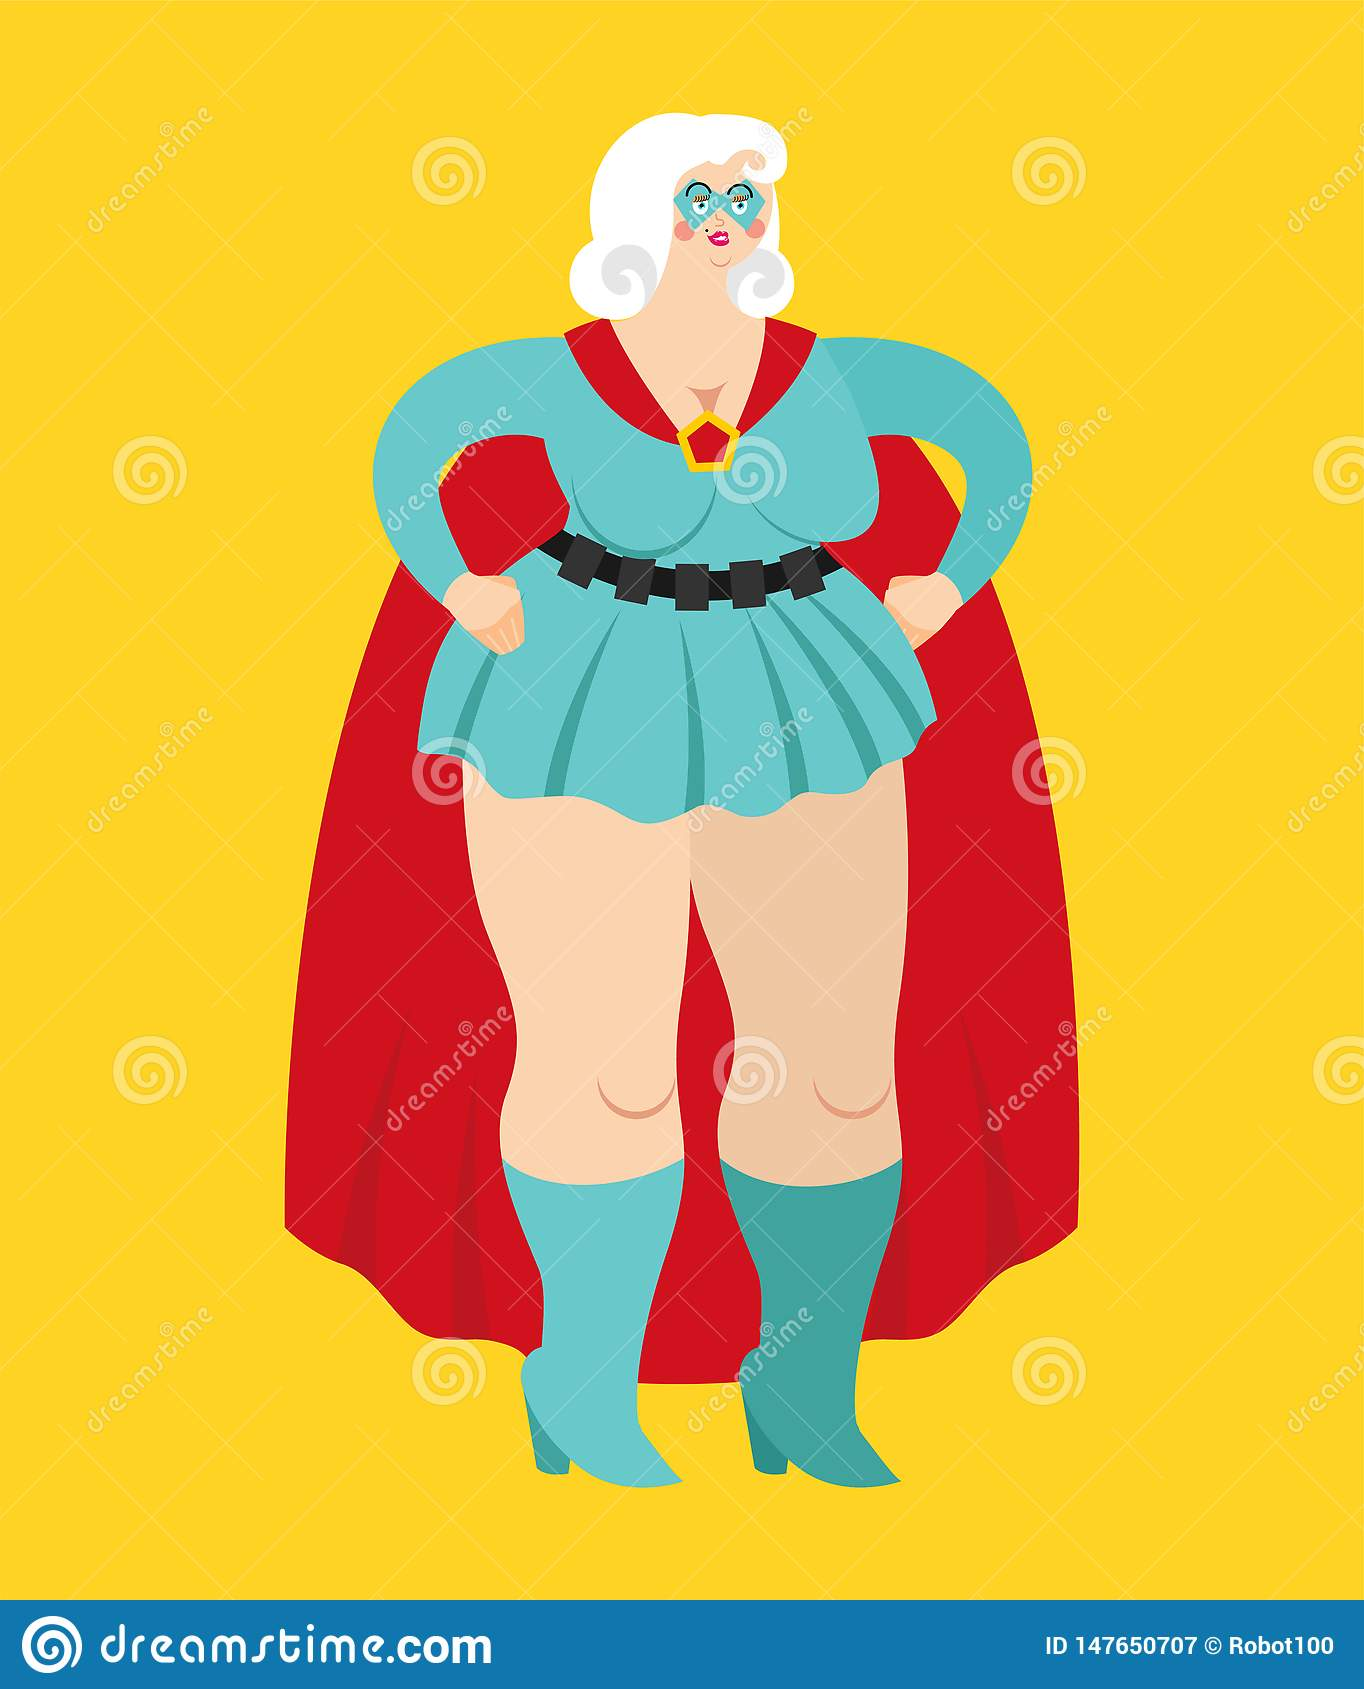 Woman superhero. Super girl in mask and raincoat. Strong lady